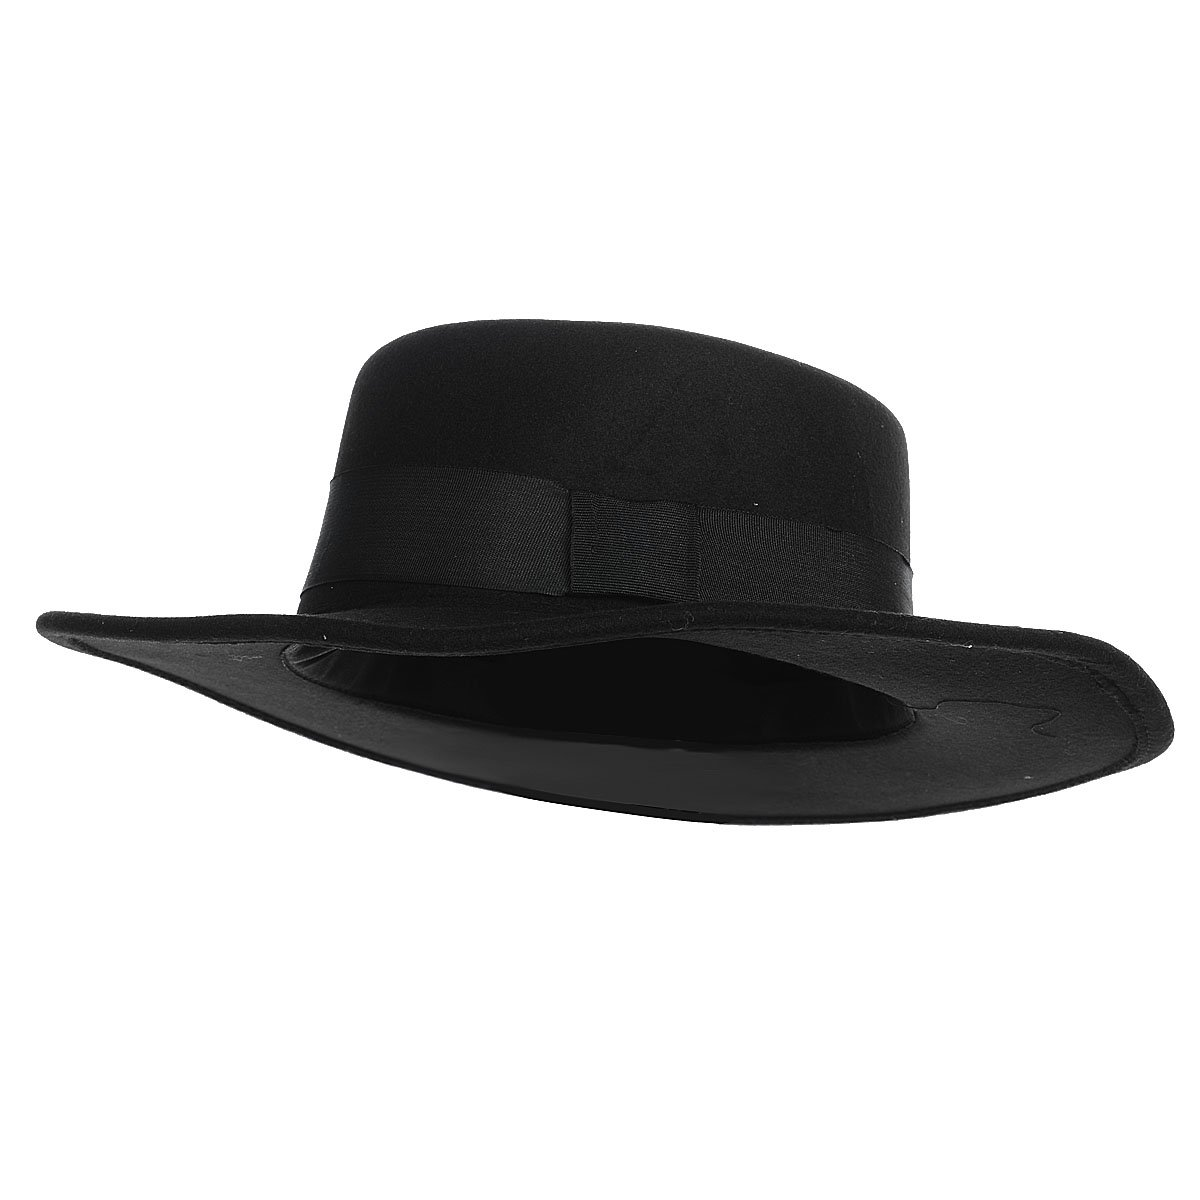 Flat Top Wide Brim Round Headgear Vintage Cap Wool Felt Fedora Hat - Black